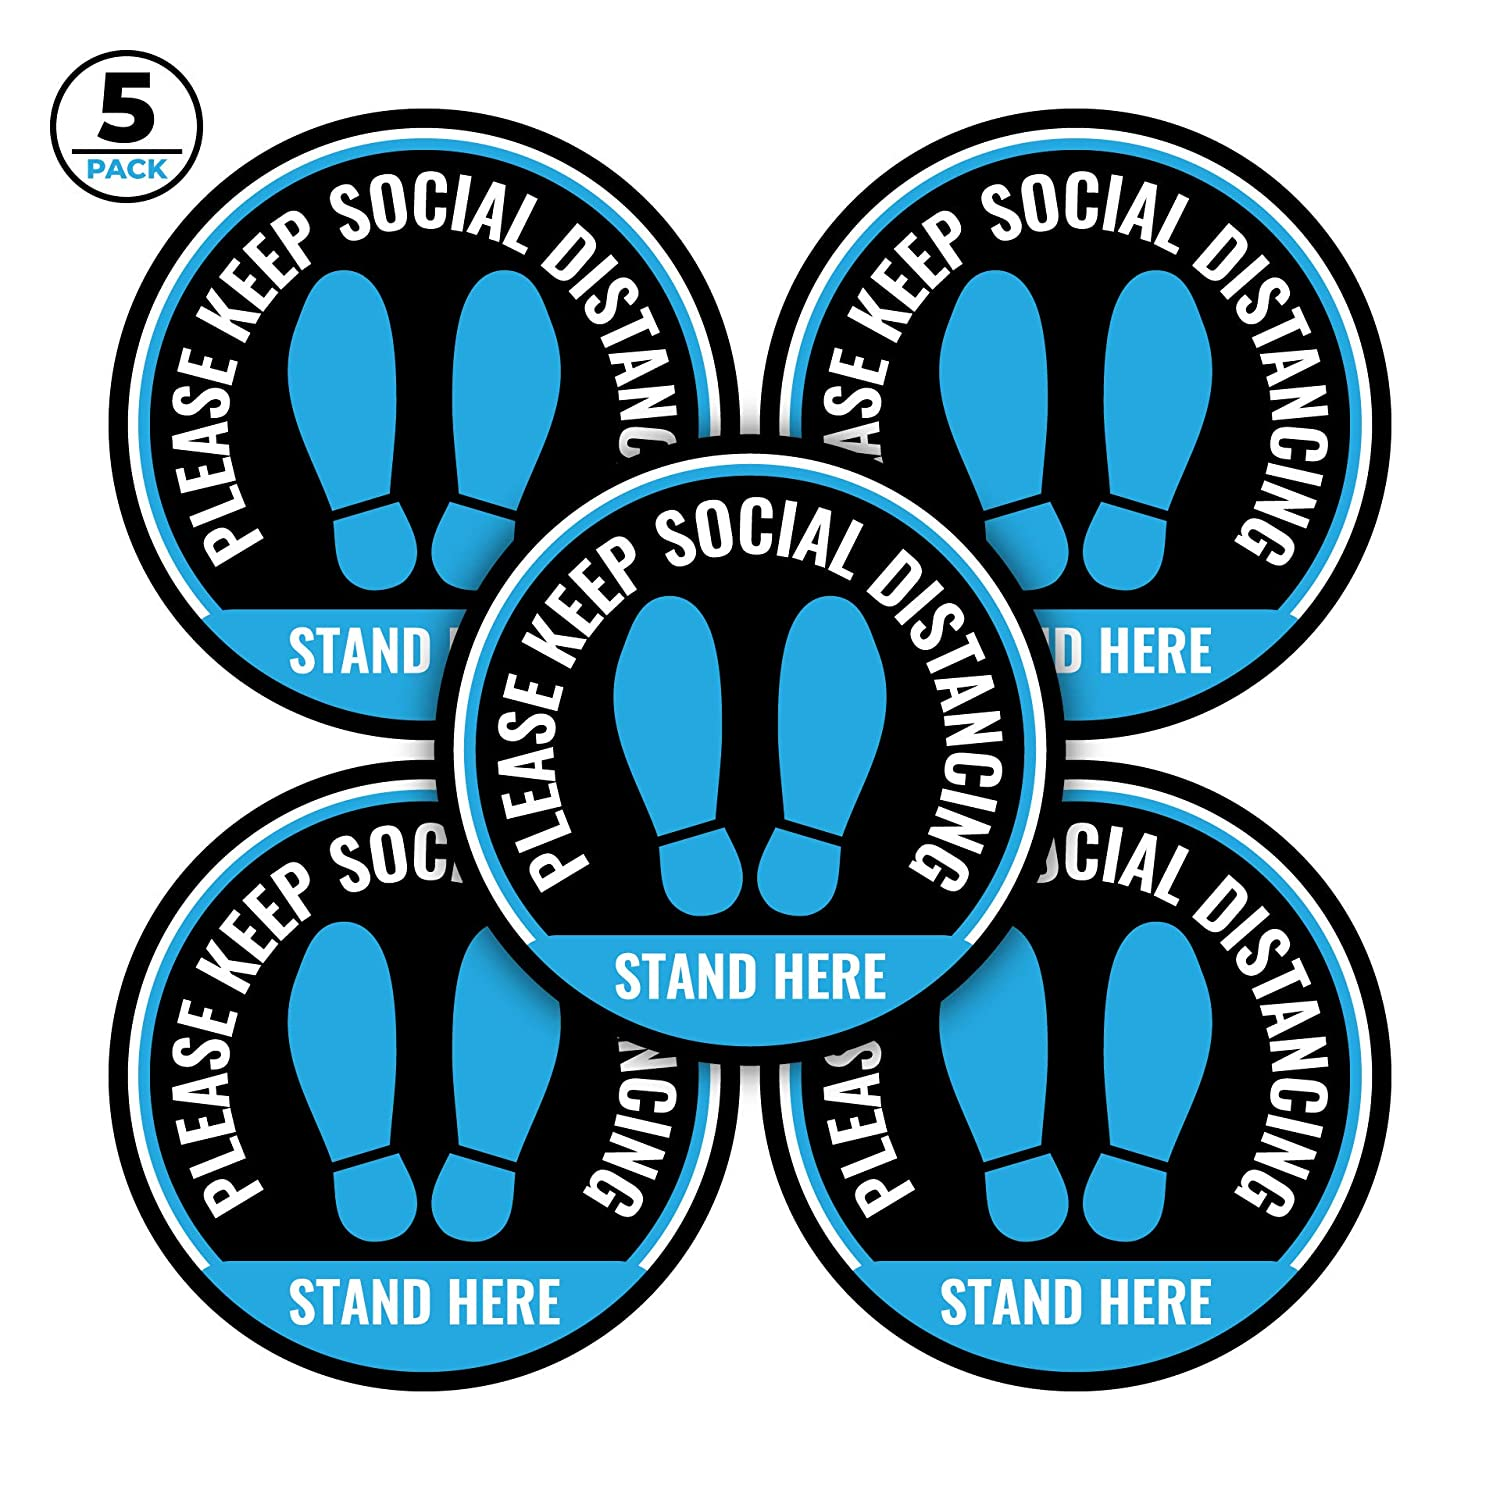 Set of 5 Blue Floor Stickers, 12 Inch Diameter - Social Distancing Floor Decals - Easy to Remove, Waterproof - 6 Feet Apart Sticker Leaves No Residual Glue - Great for Schools, Offices, Retail Stores